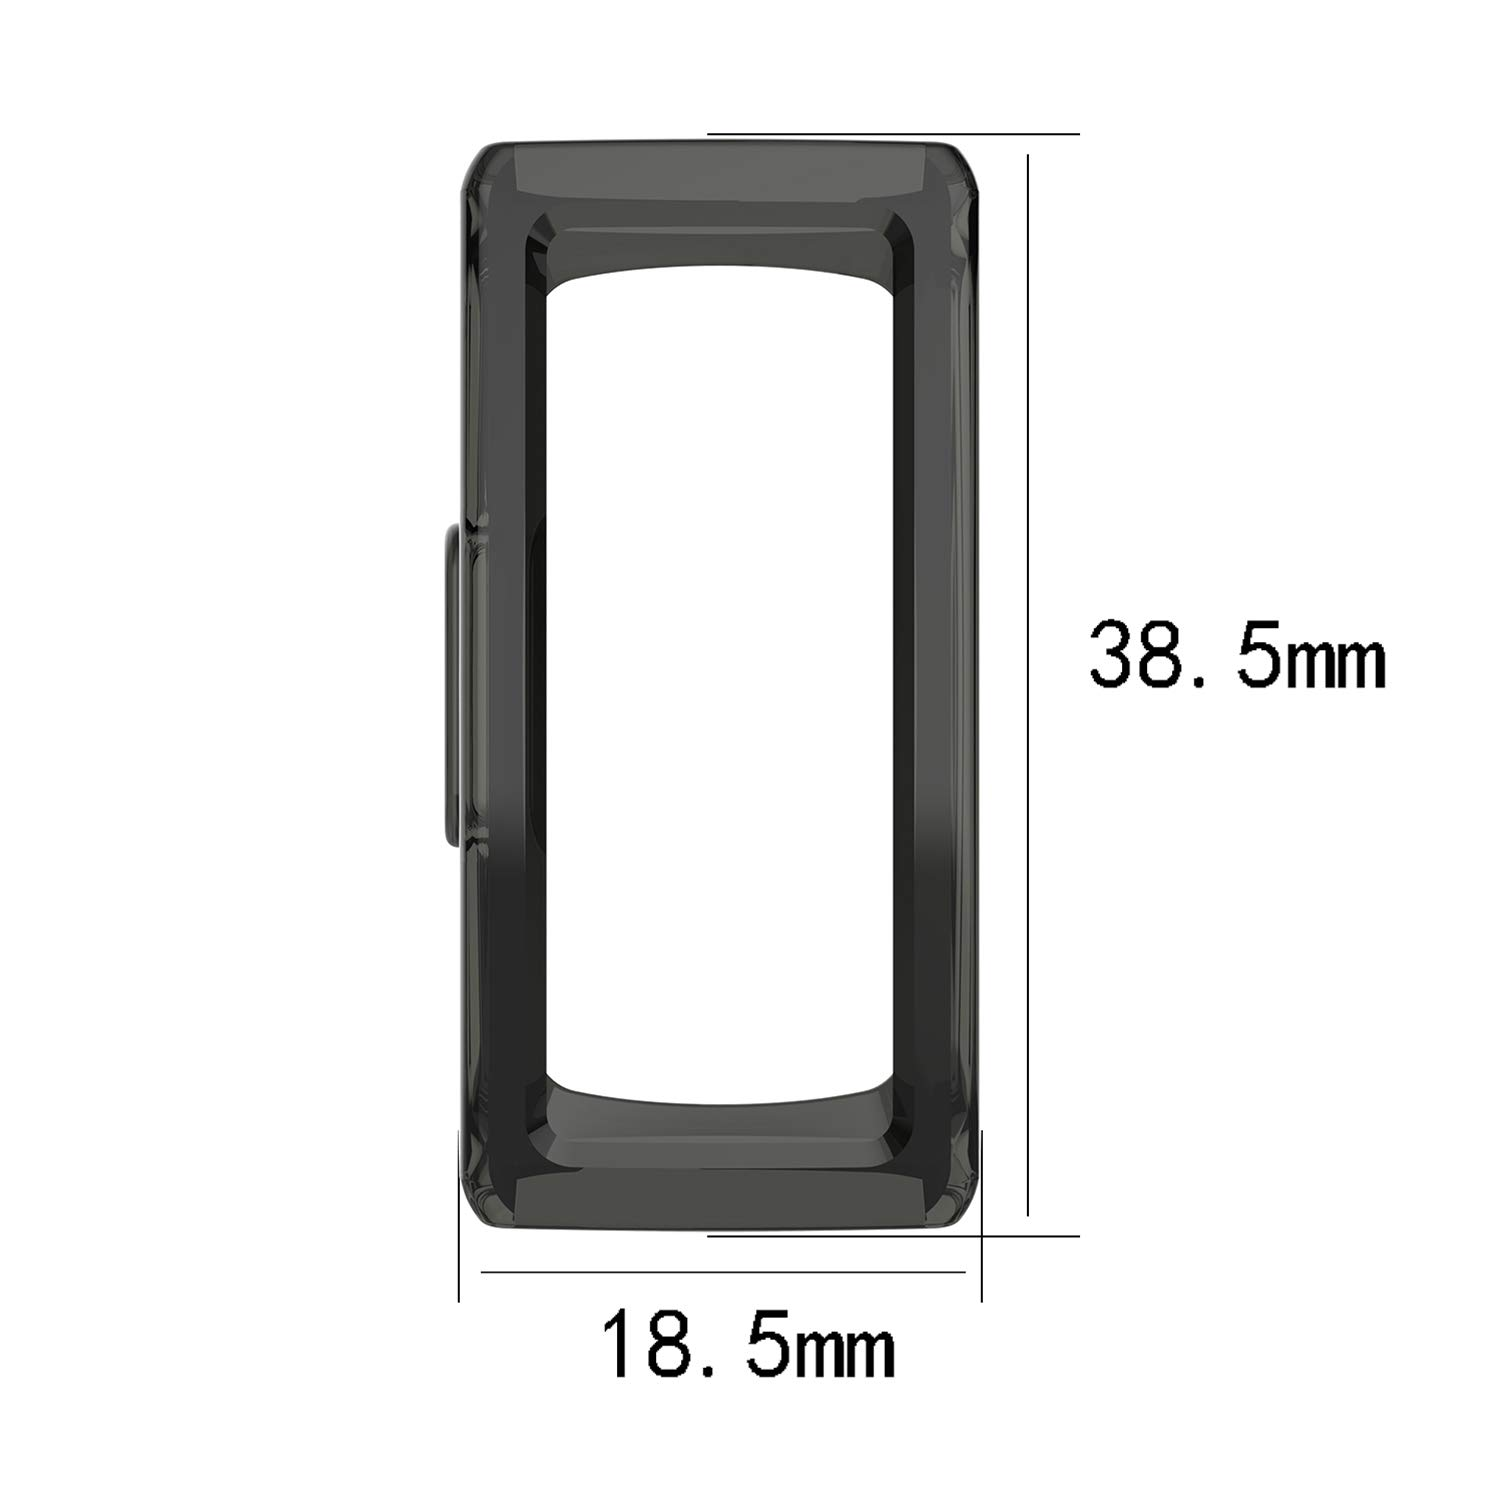 FASTSNAIL Protective Case for Fitbit Inspire/&Fitbit Inspire HR/&Fitbit Ace 2, Screen Protector Case Cover for Fitbit Inspire//Inspire HR//Ace 2 Activity Tracker 6Pack